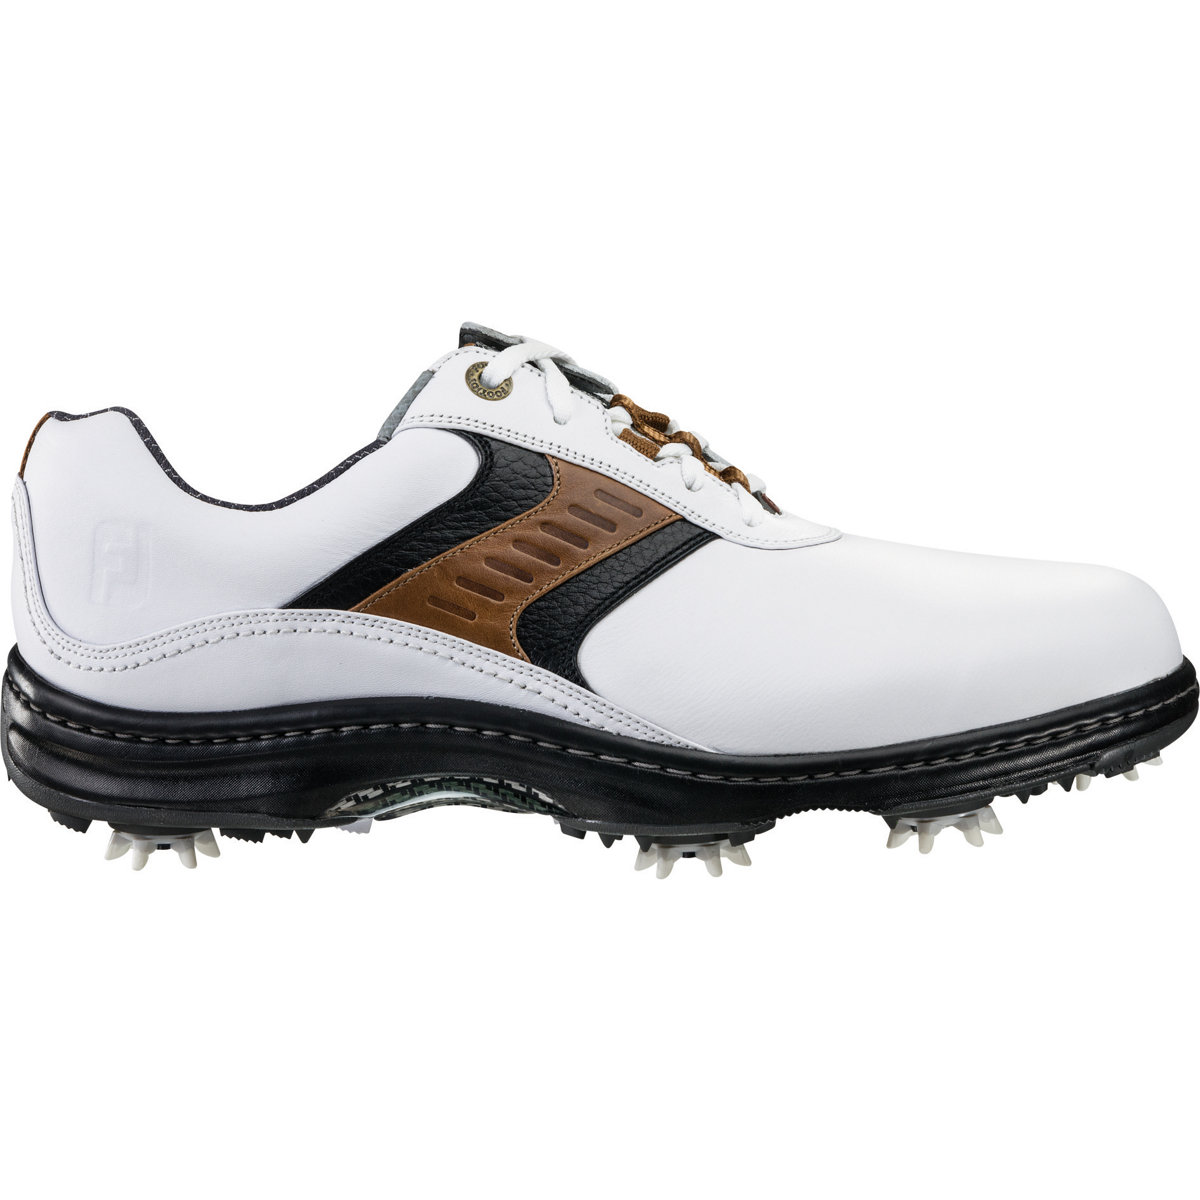 mens golf shoes size 15